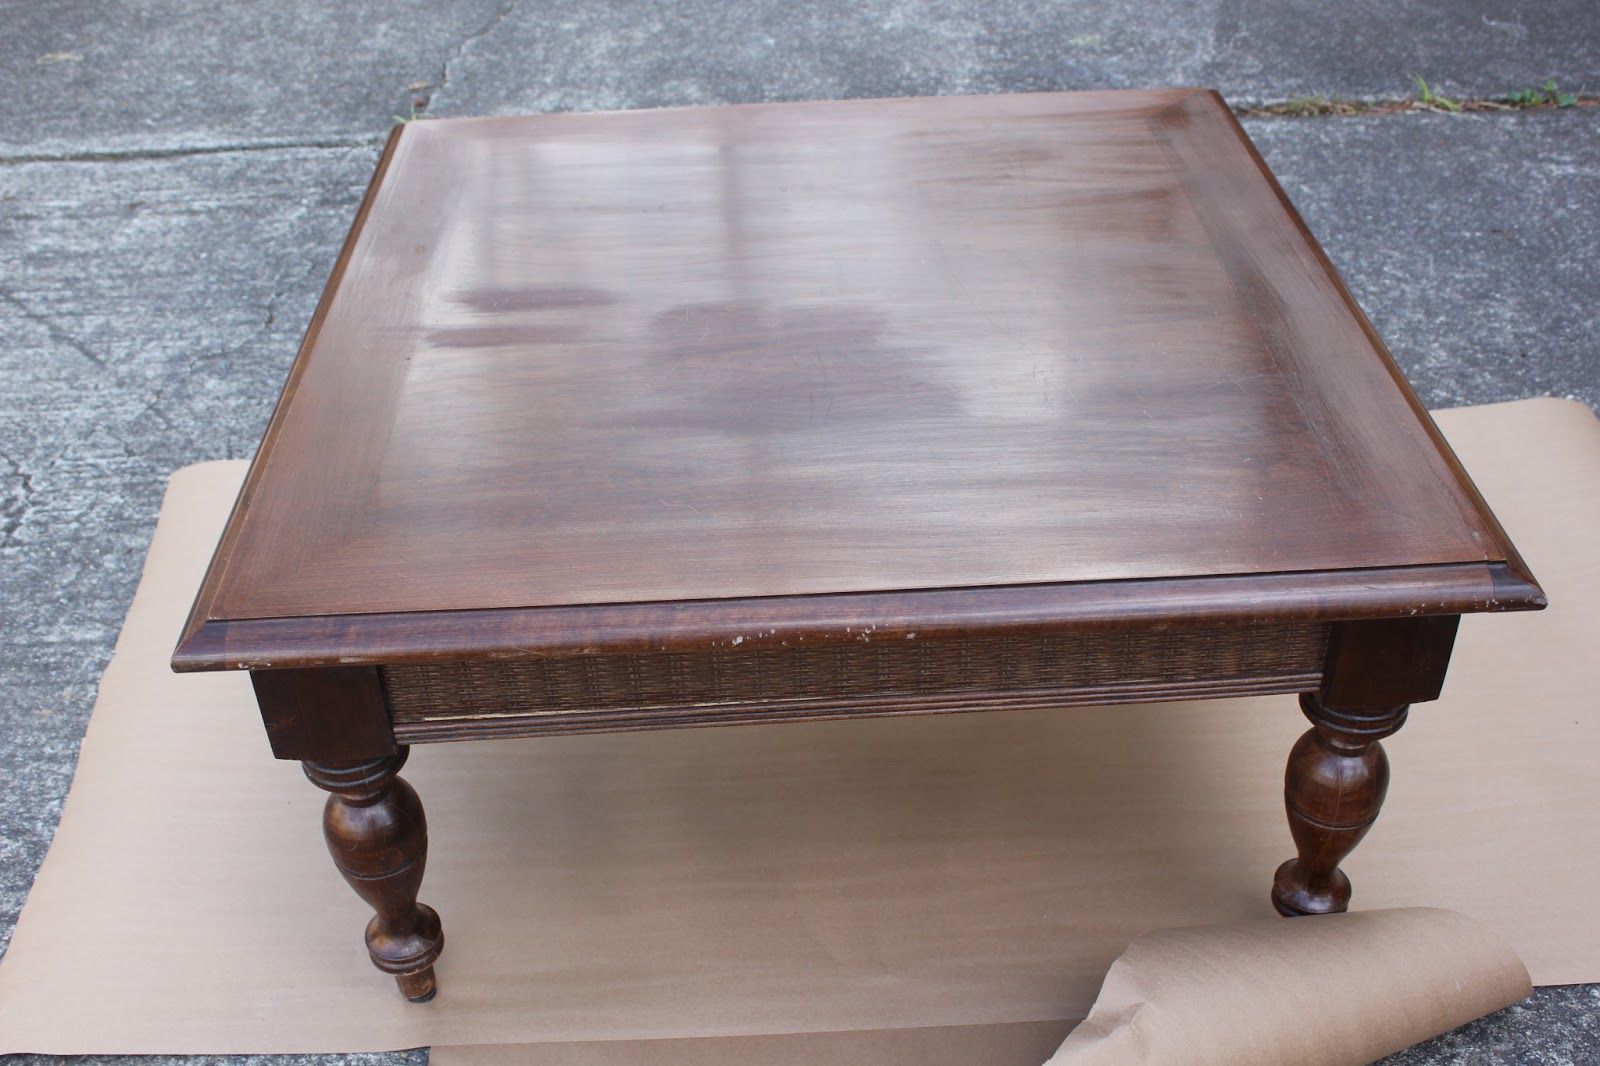 Mad Mary S Junk Yard Square Coffee Table Made In The Good Ole Usa